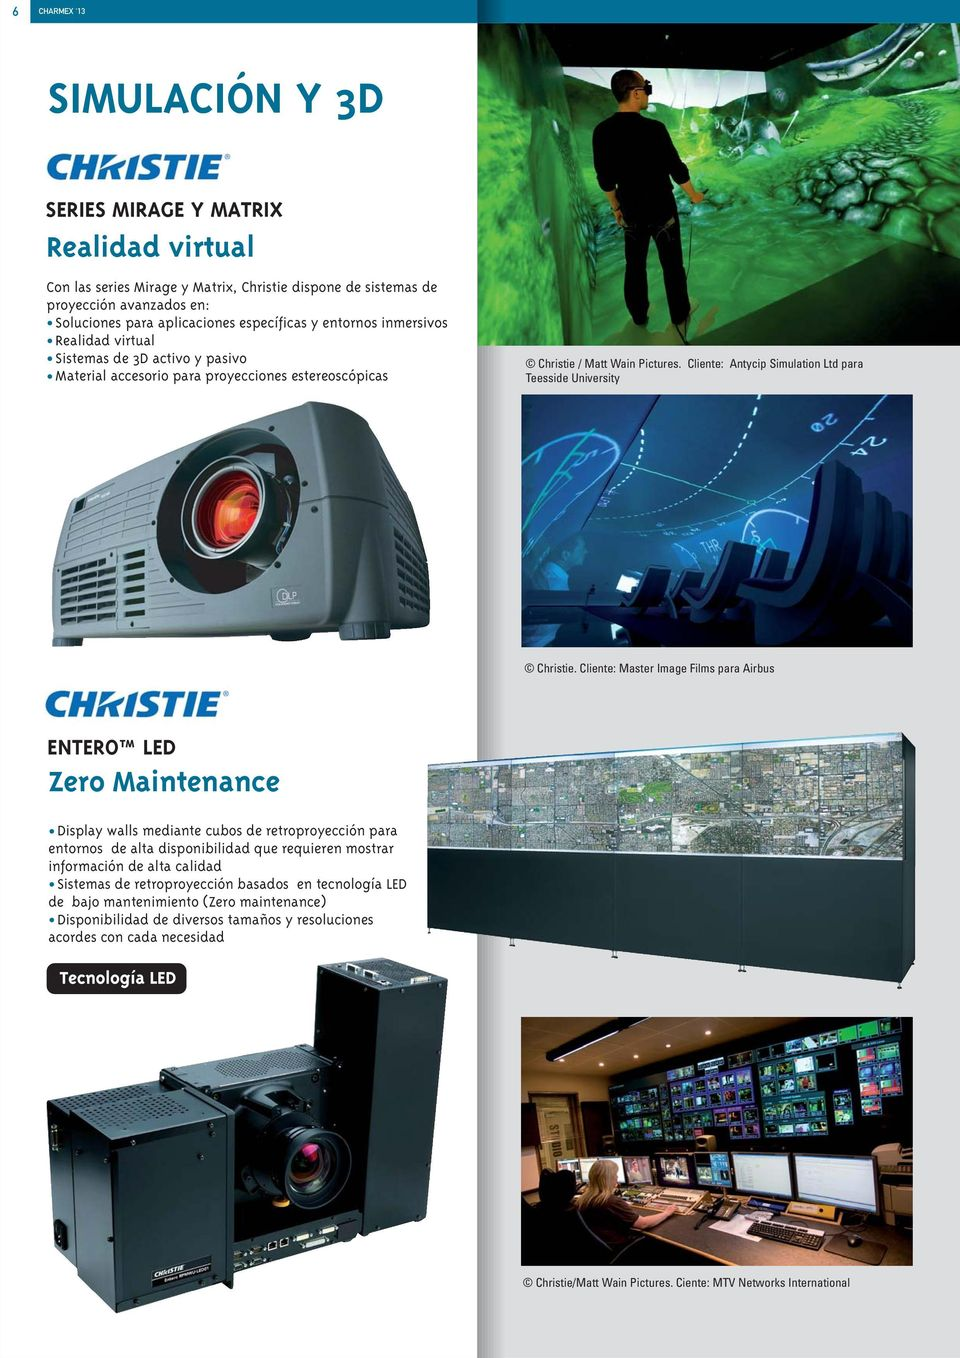 Cliente: Antycip Simulation Ltd para Teesside University Christie.